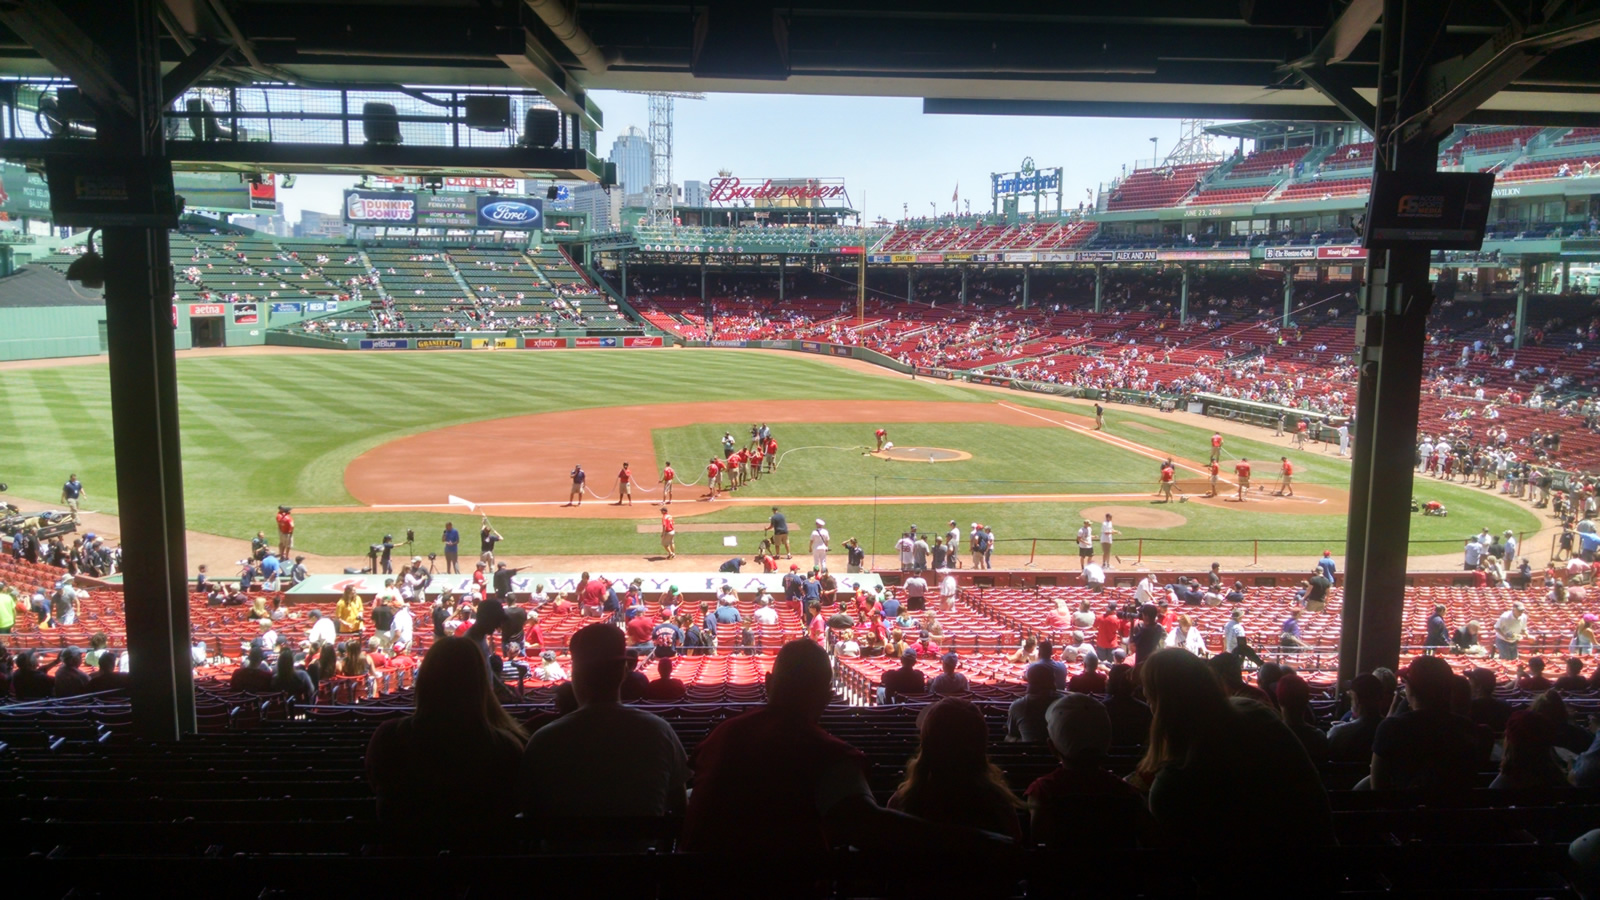 Seat View for Fenway Park Grandstand 26, Row 15, Seat 15